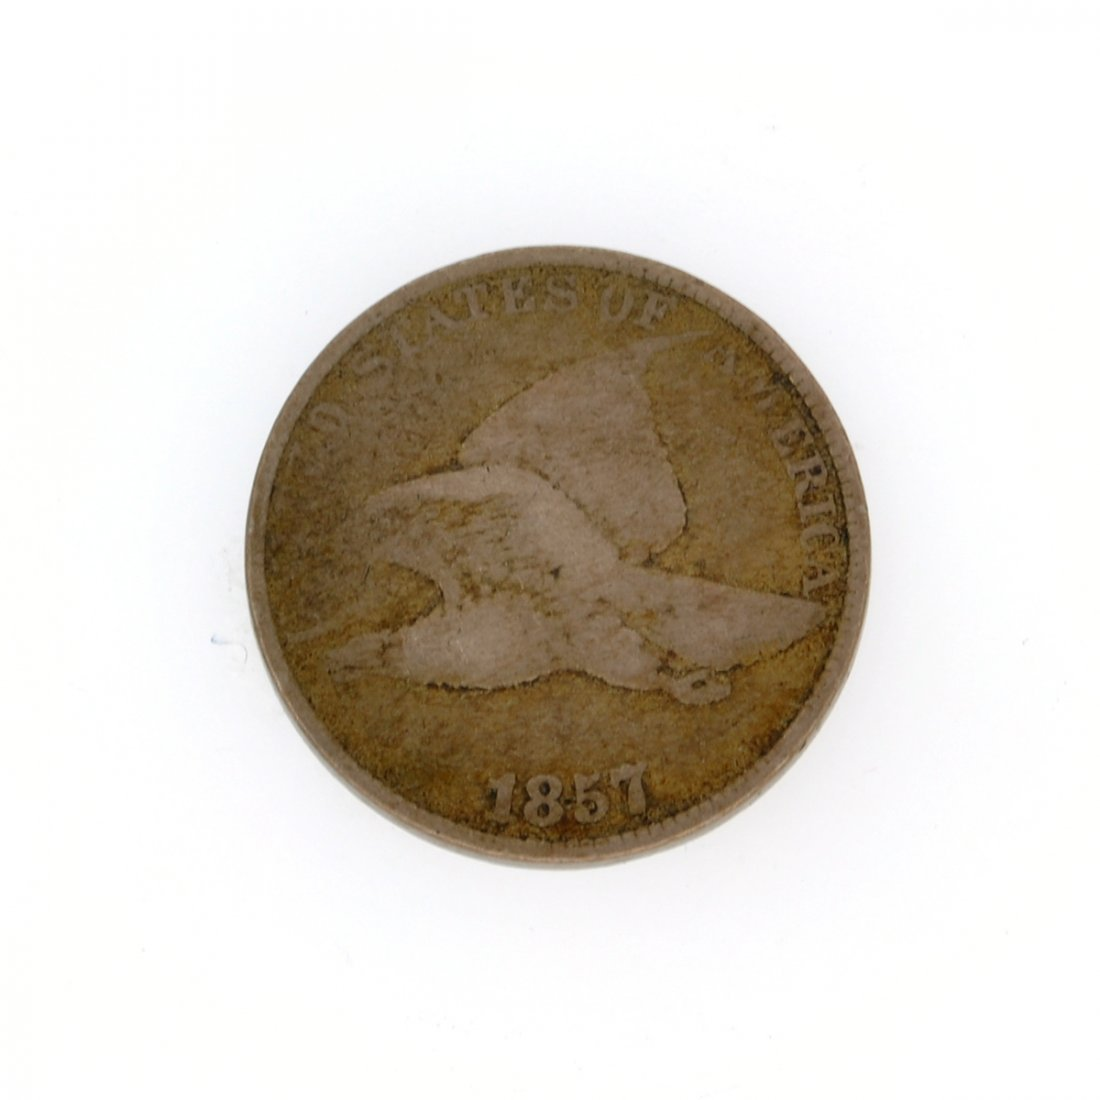 Rare 1857 Flying Eagle One Cent Coin